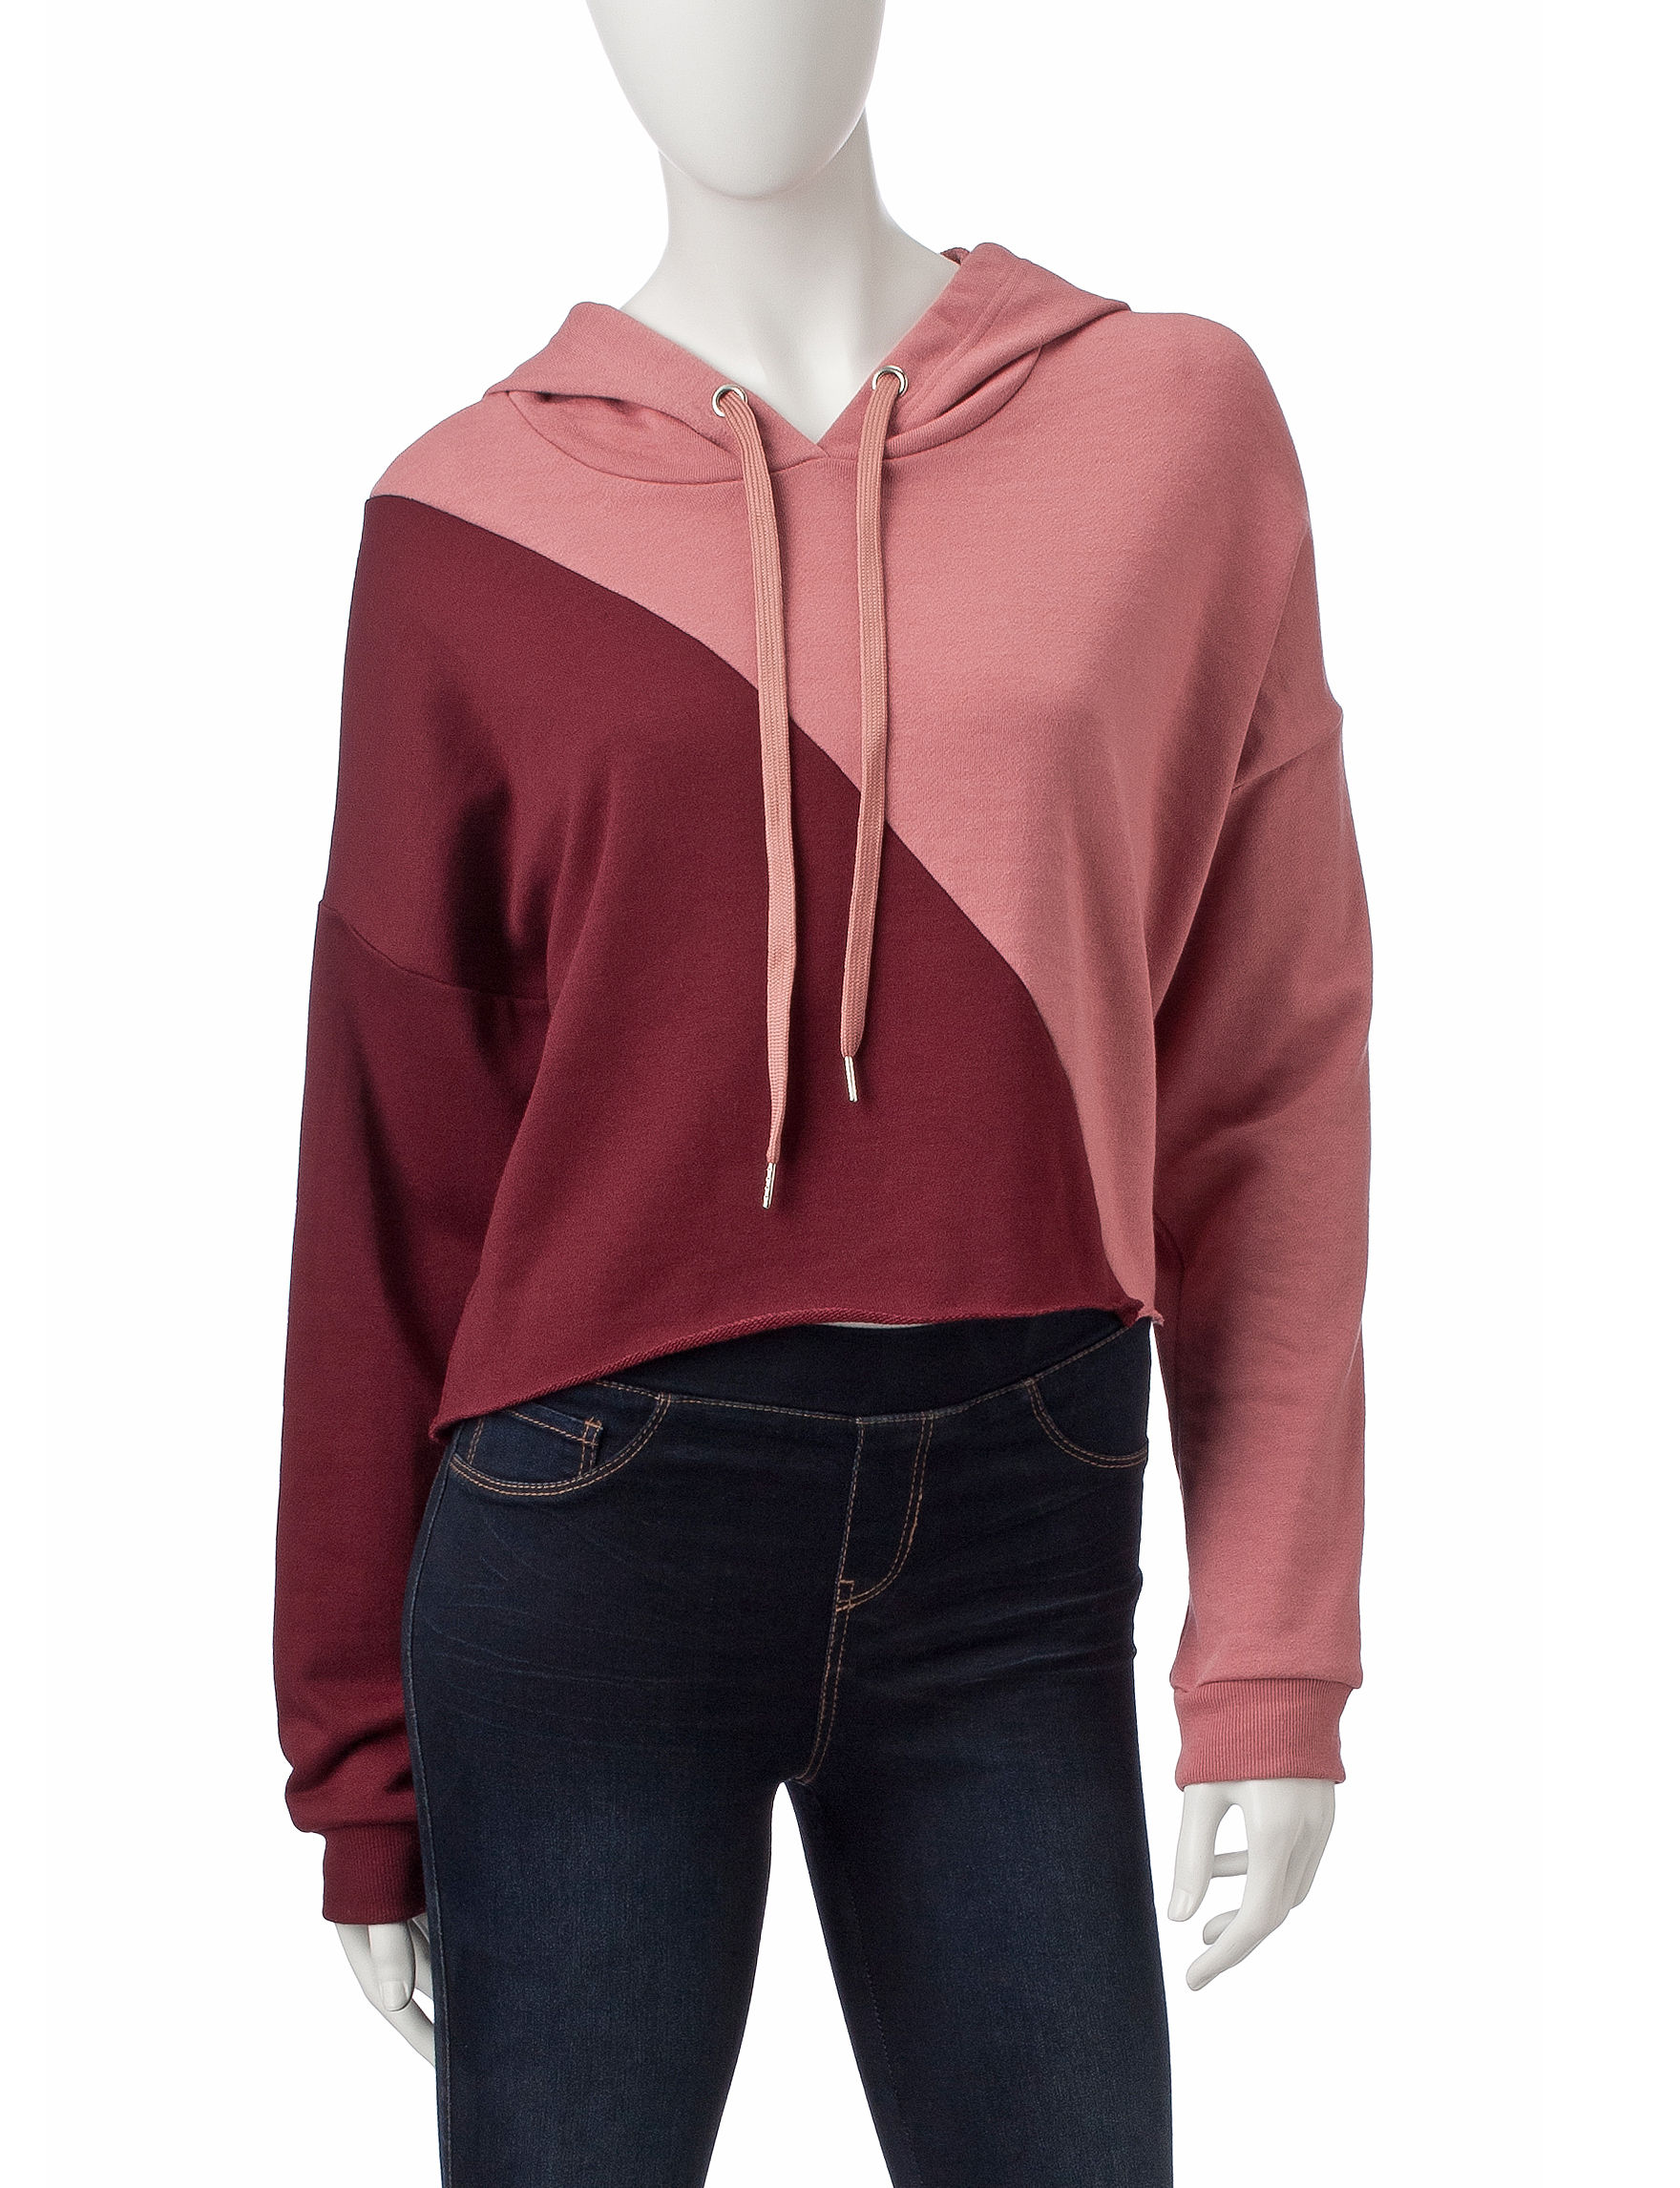 Justify Pink / Burgundy Pull-overs